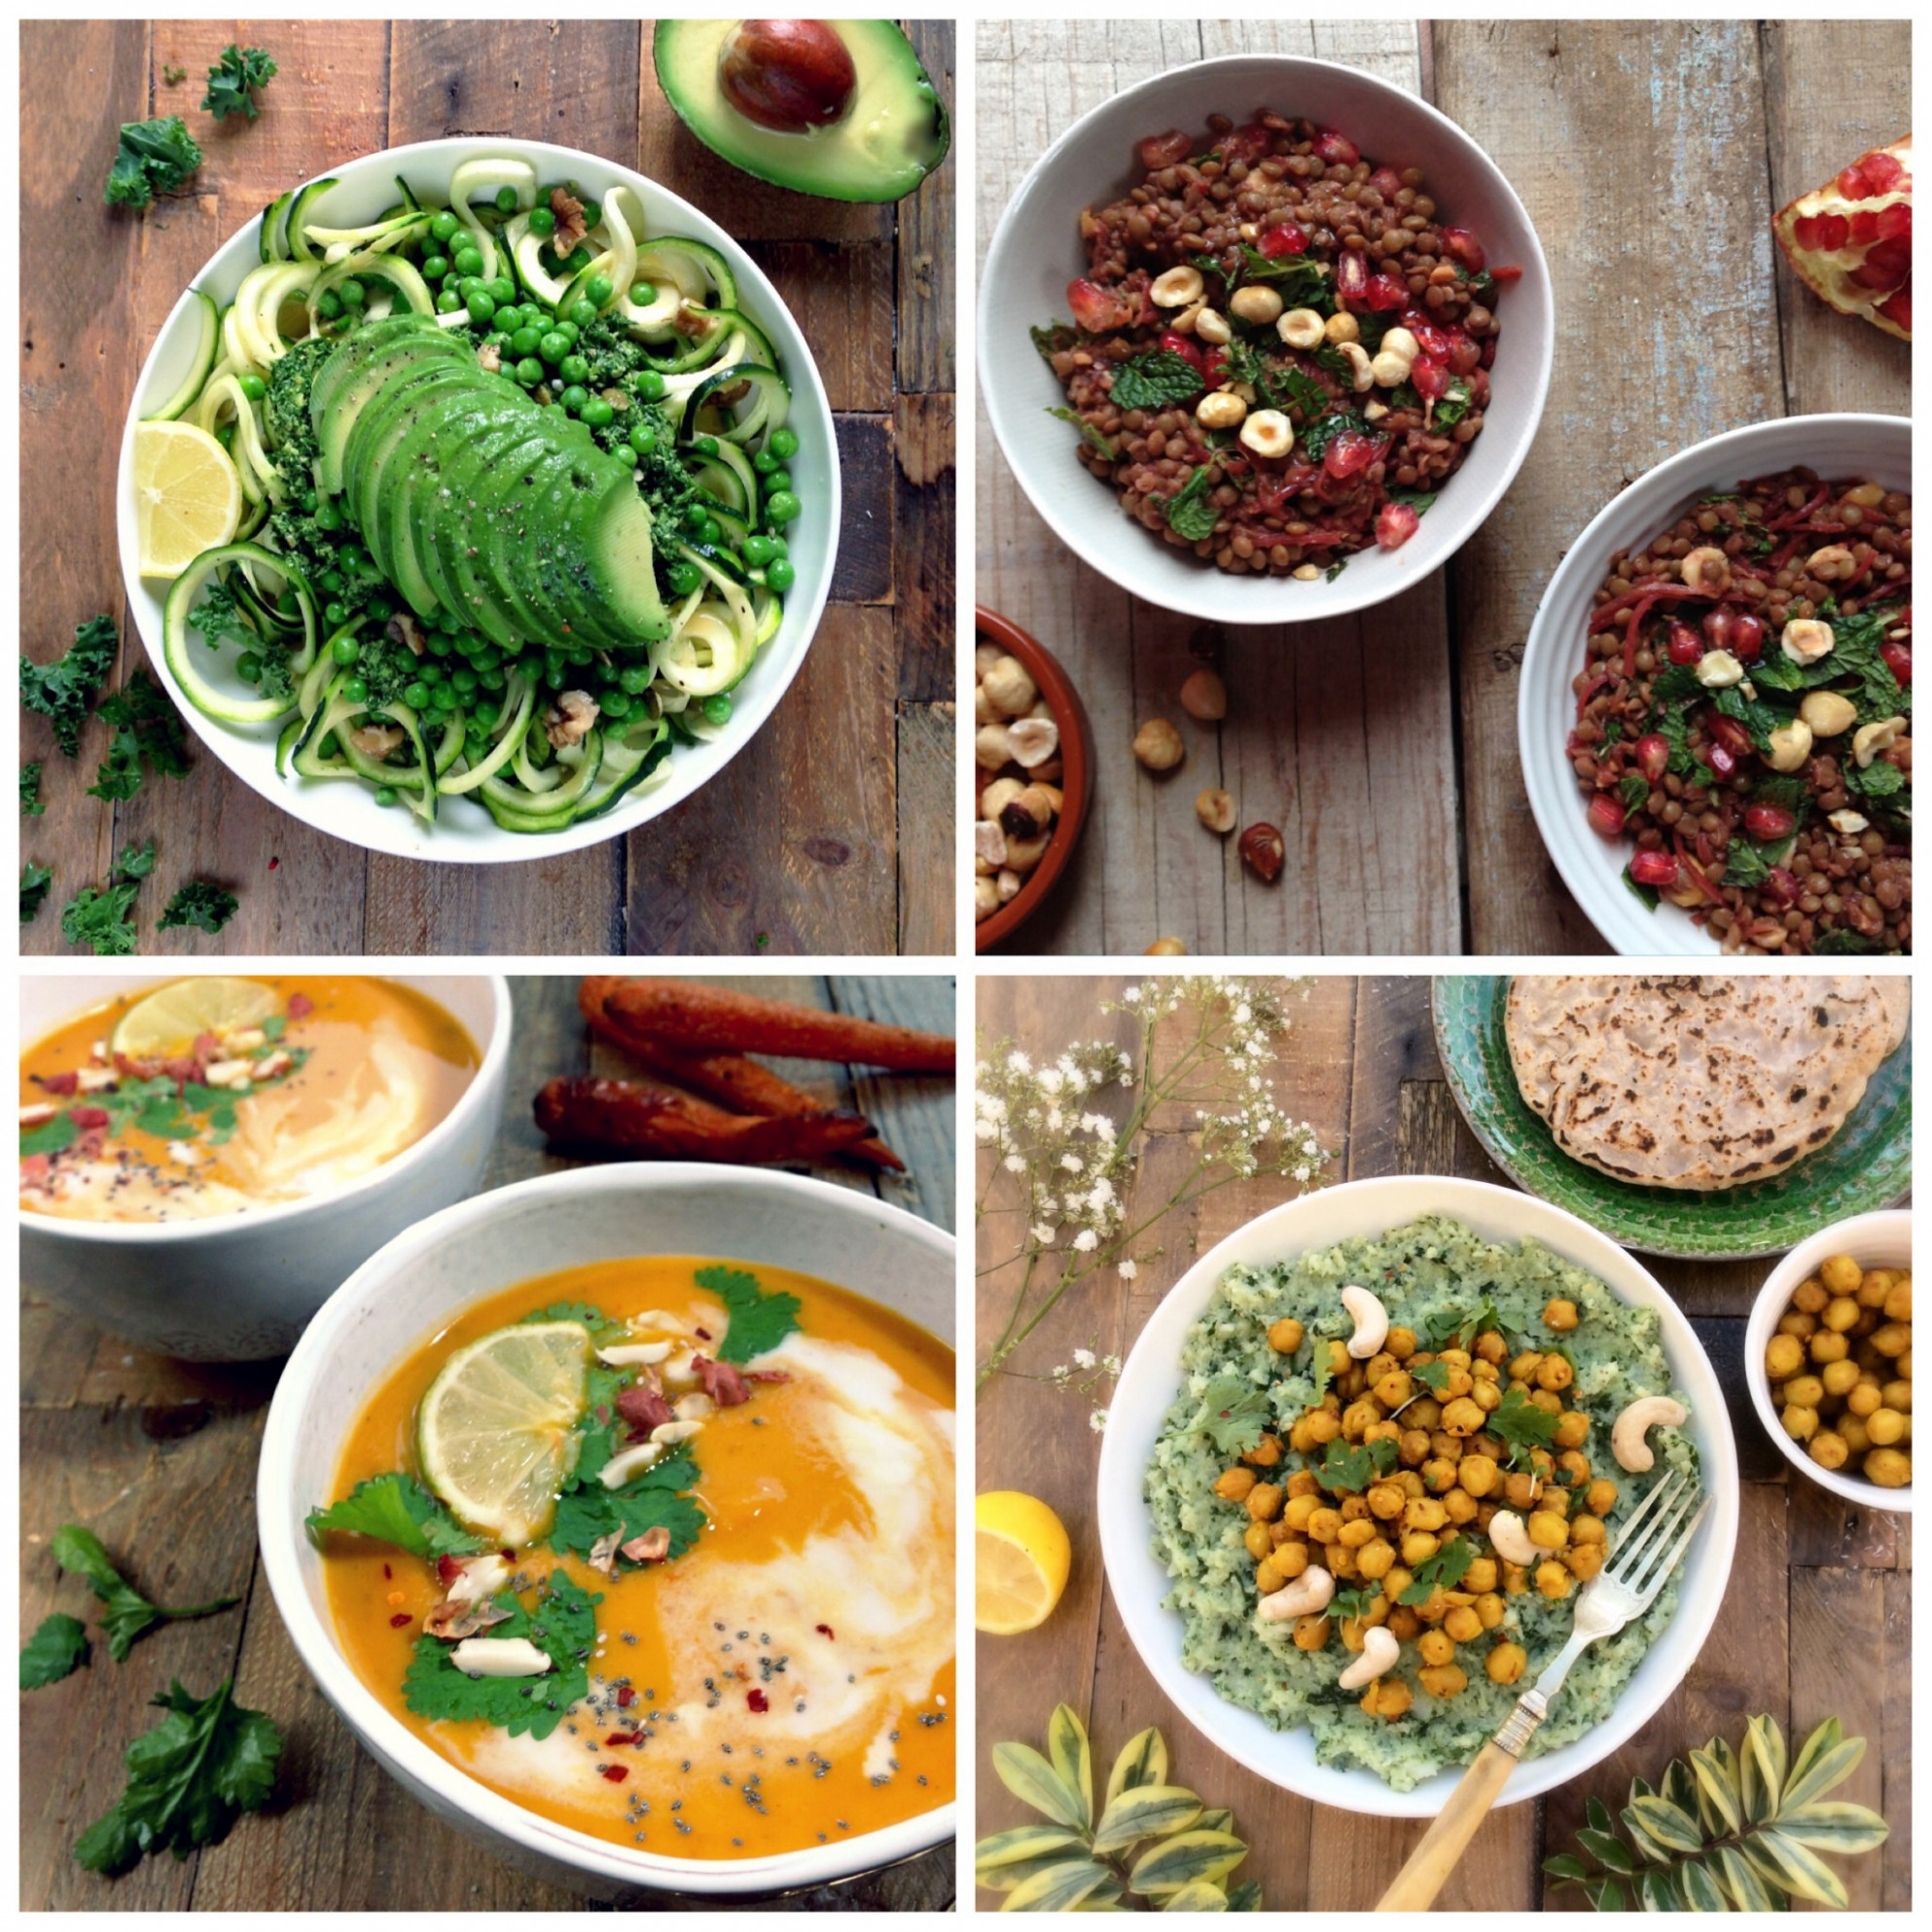 Top Ten Healthy and Light Vegan Dinners - Rebel Recipes